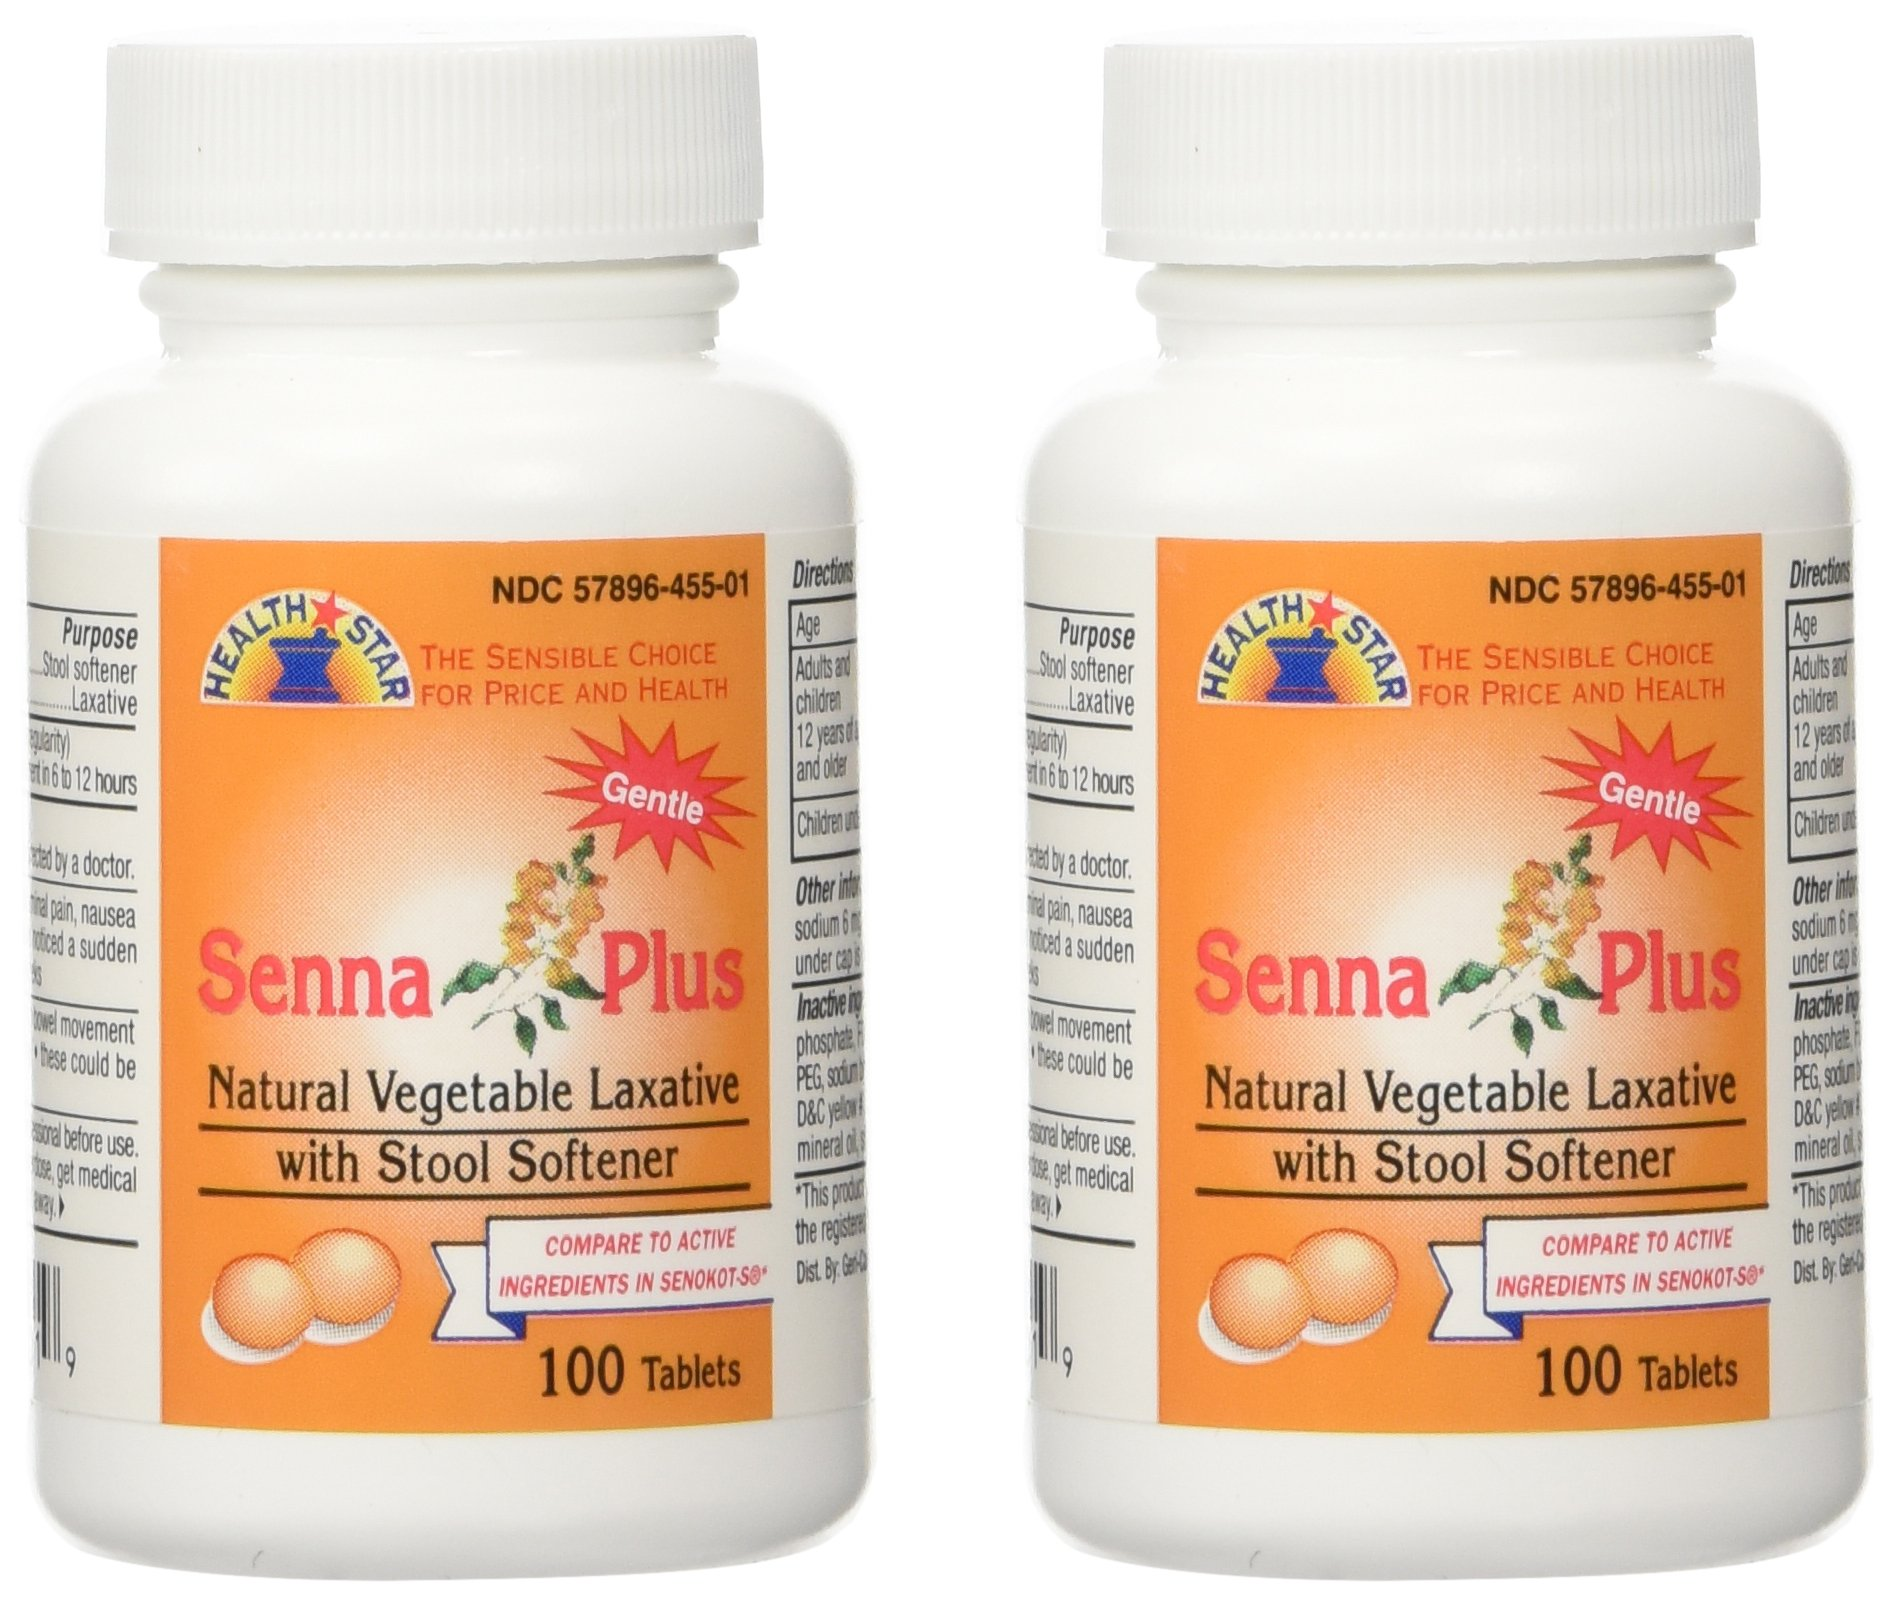 Senna Plus Natural Vegetable Laxative with Stool Softener, 100 tablets (Pack of 2)